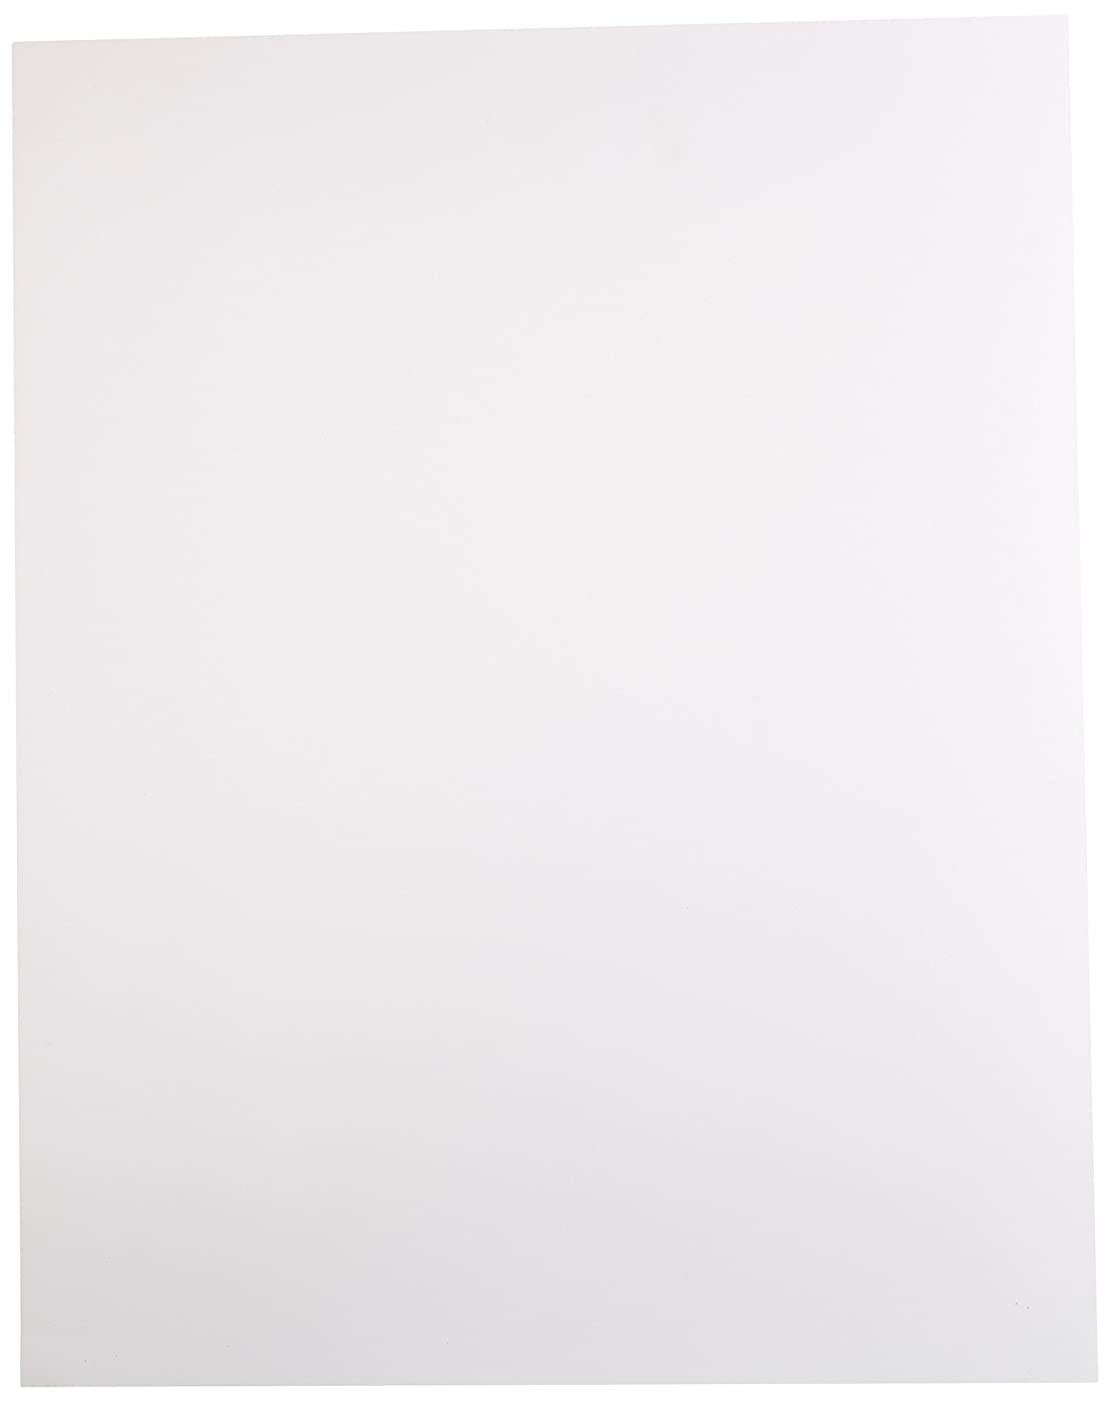 Bee Paper Bleedproof Marker Pack, 11-Inch by 14-Inch, 50 Sheets per Pack